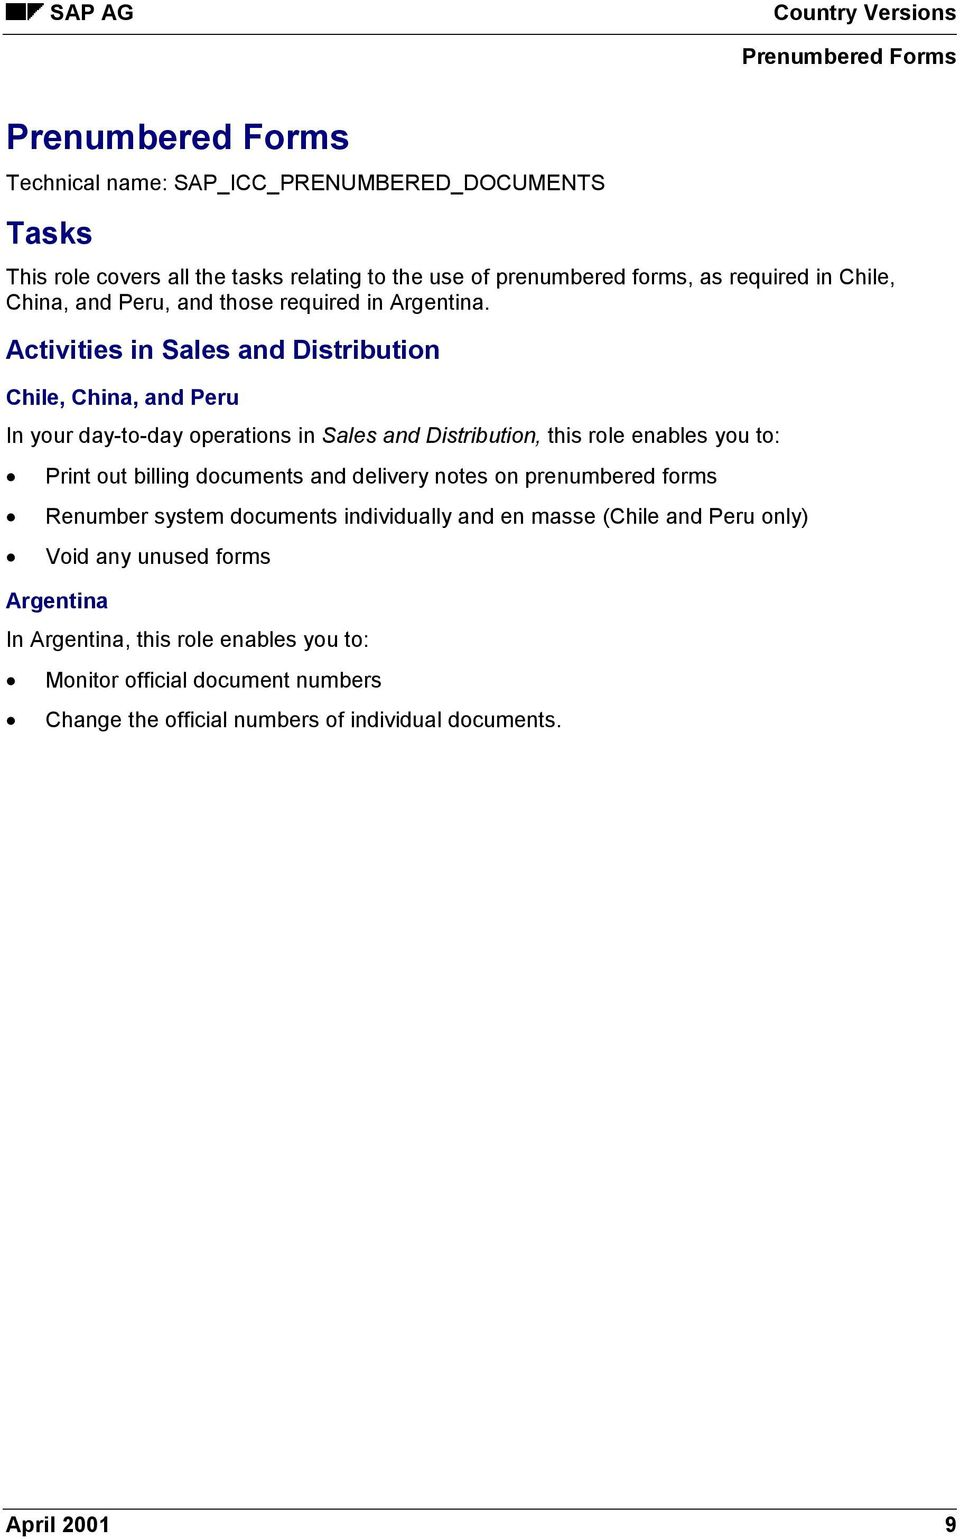 Activities in Sales and Distribution Chile, China, and Peru In your day-to-day operations in Sales and Distribution, this role enables you to: Print out billing documents